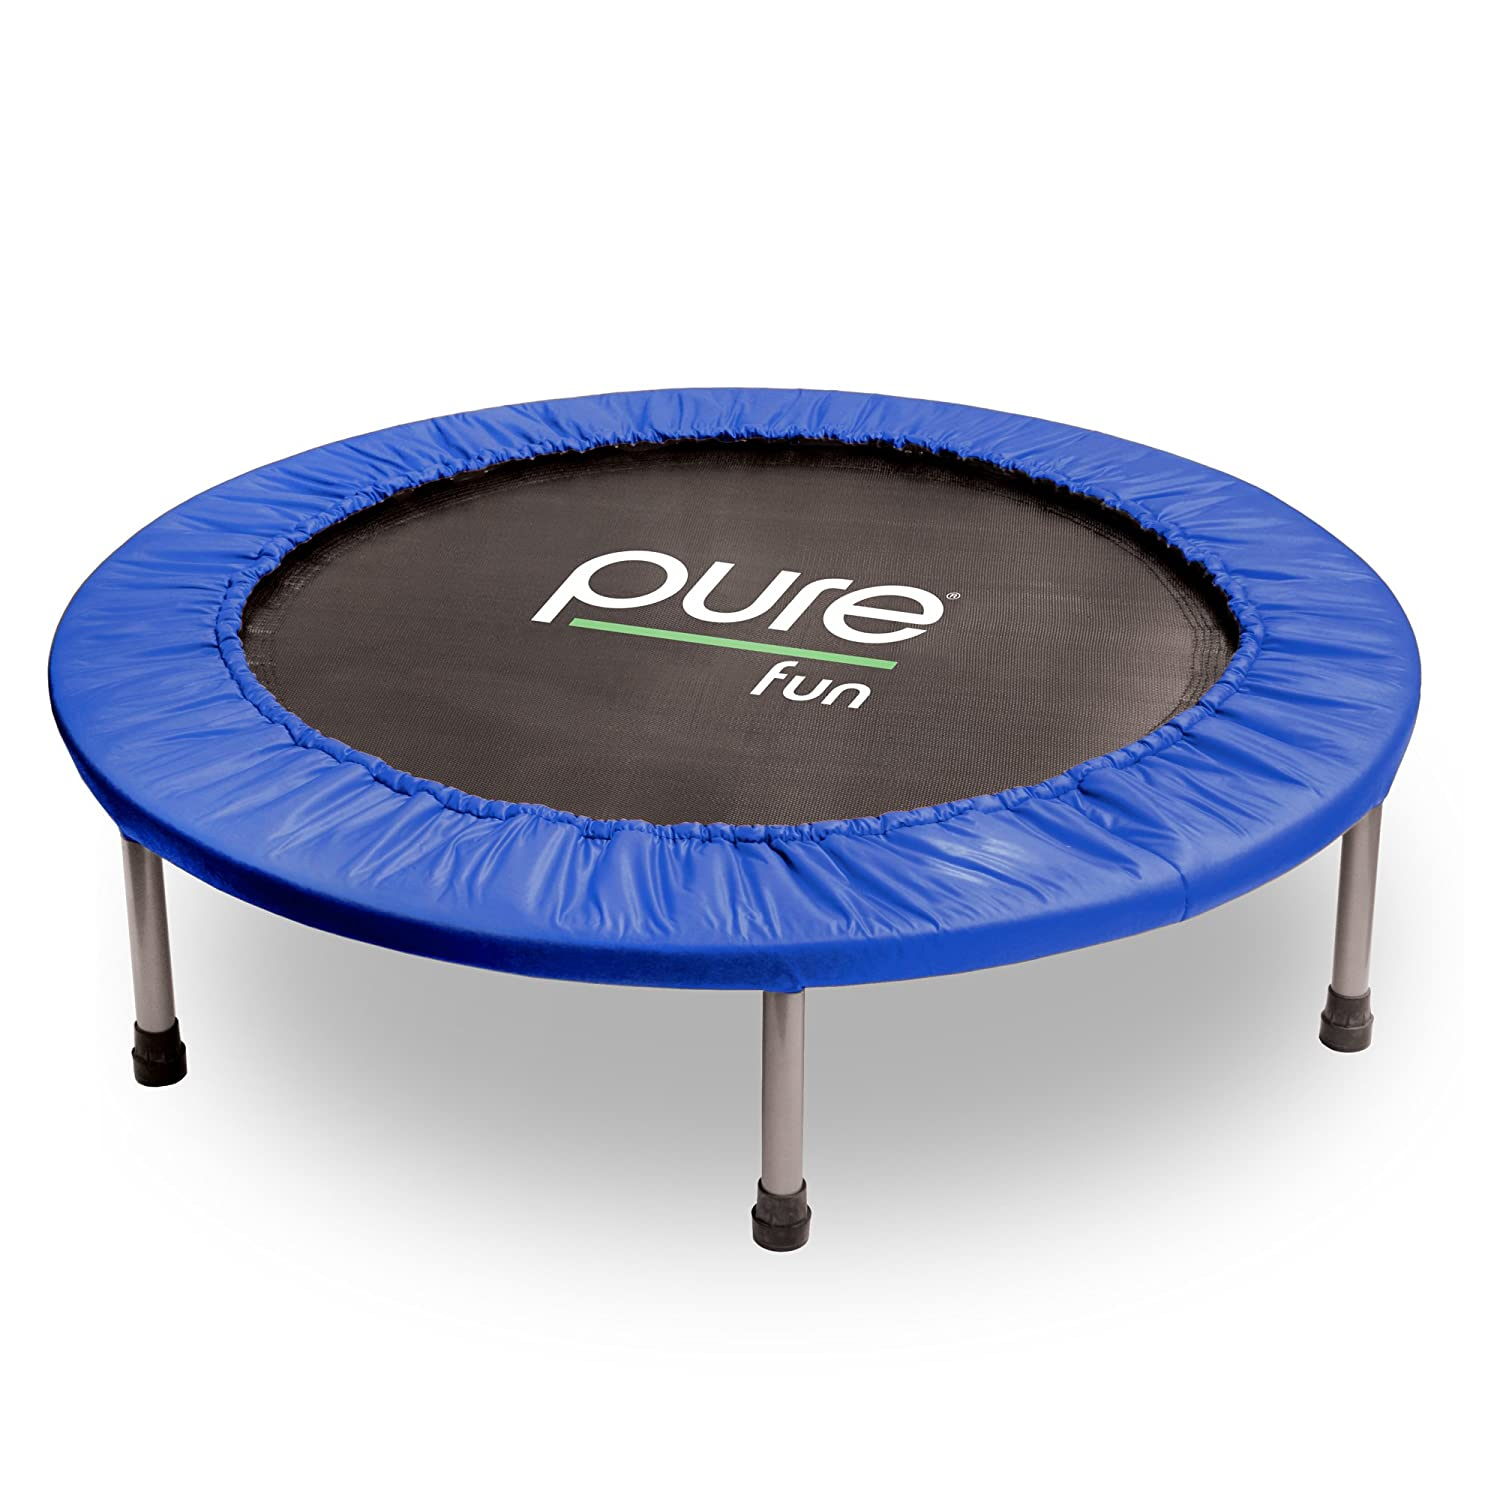 Global Quality Brands 9002MT Ages 13 Pure Fun Mini Rebounder Trampoline